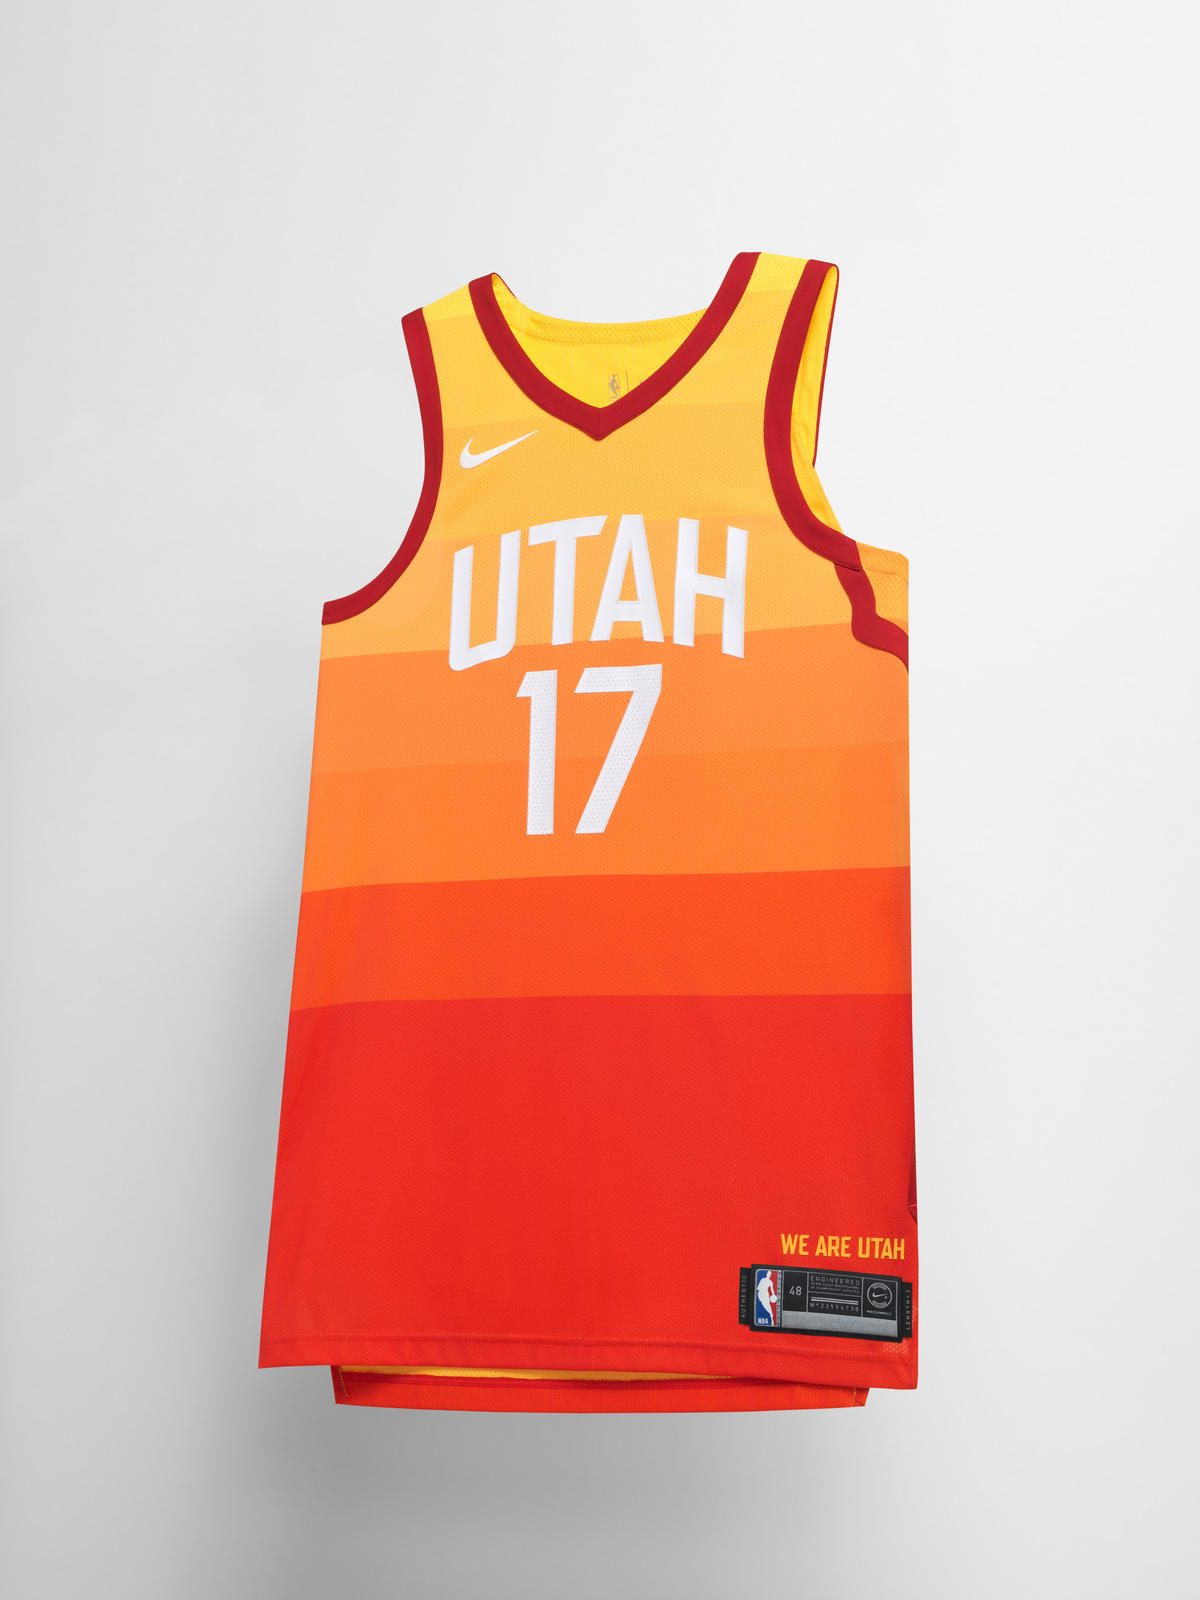 Nike NBA City Edition Uniform - Nike News e6a304c02